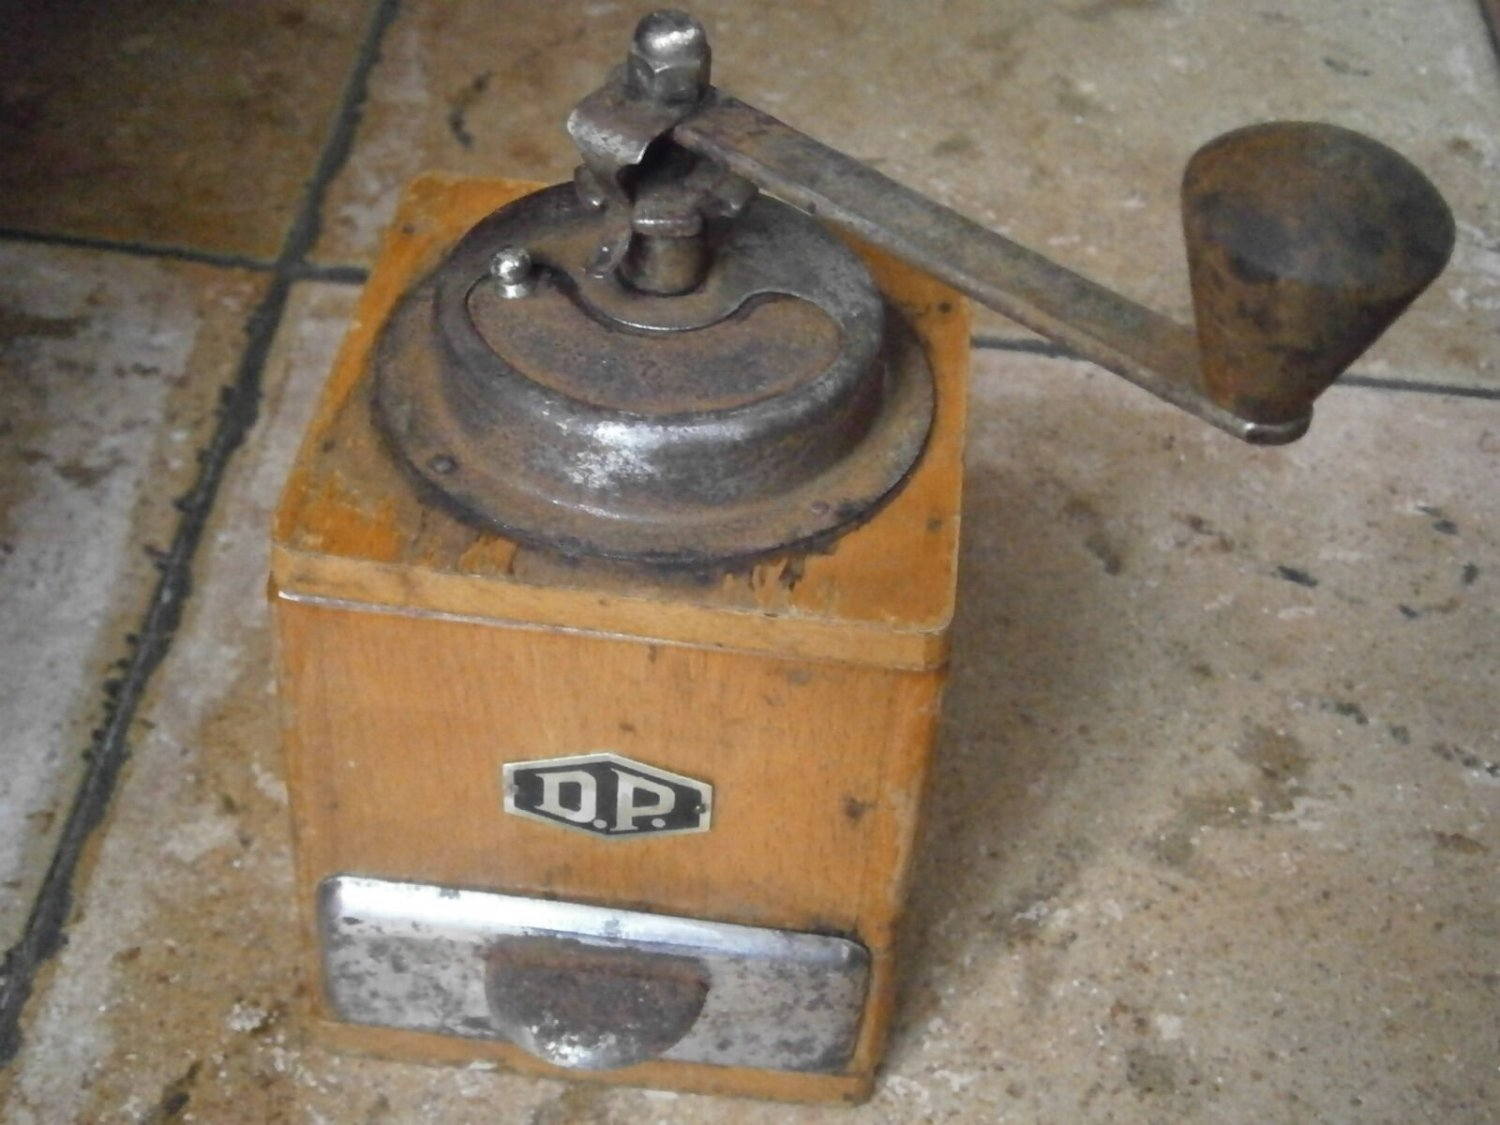 DP D.P COFFEE grinder in wood and metal Original from 1950s Working